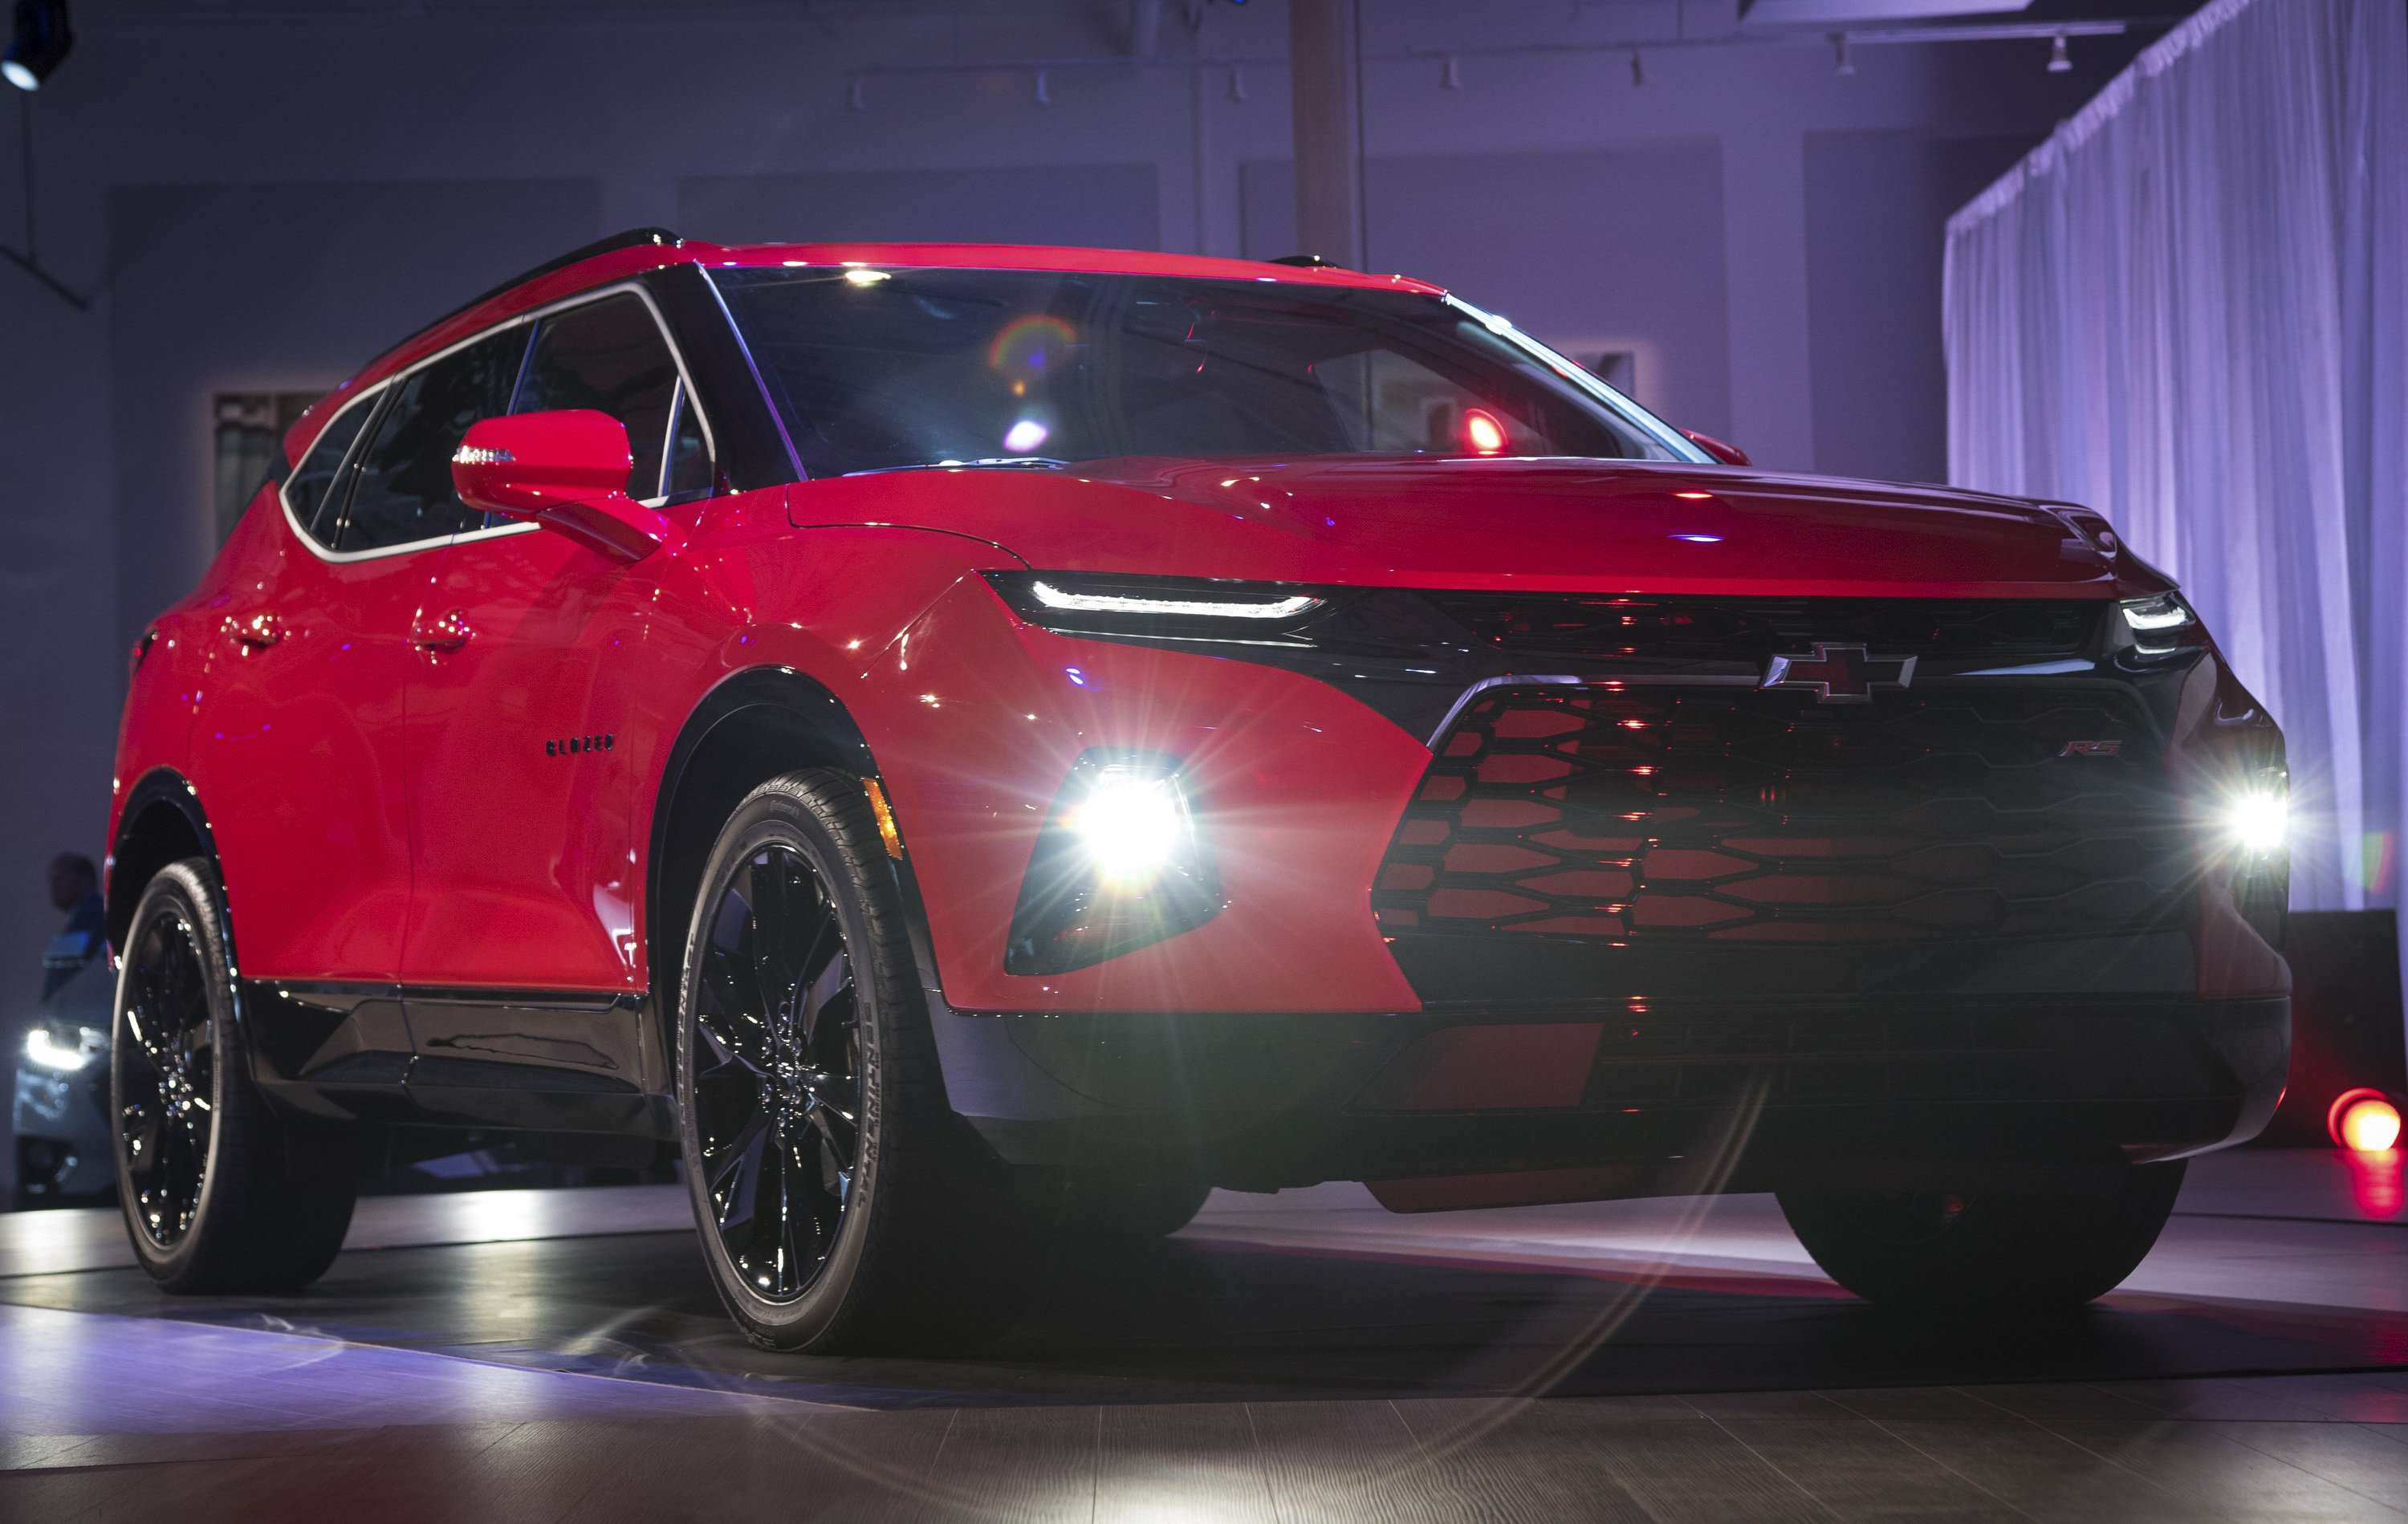 66 A 2019 Chevrolet Trailblazer Ss Price And Release Date